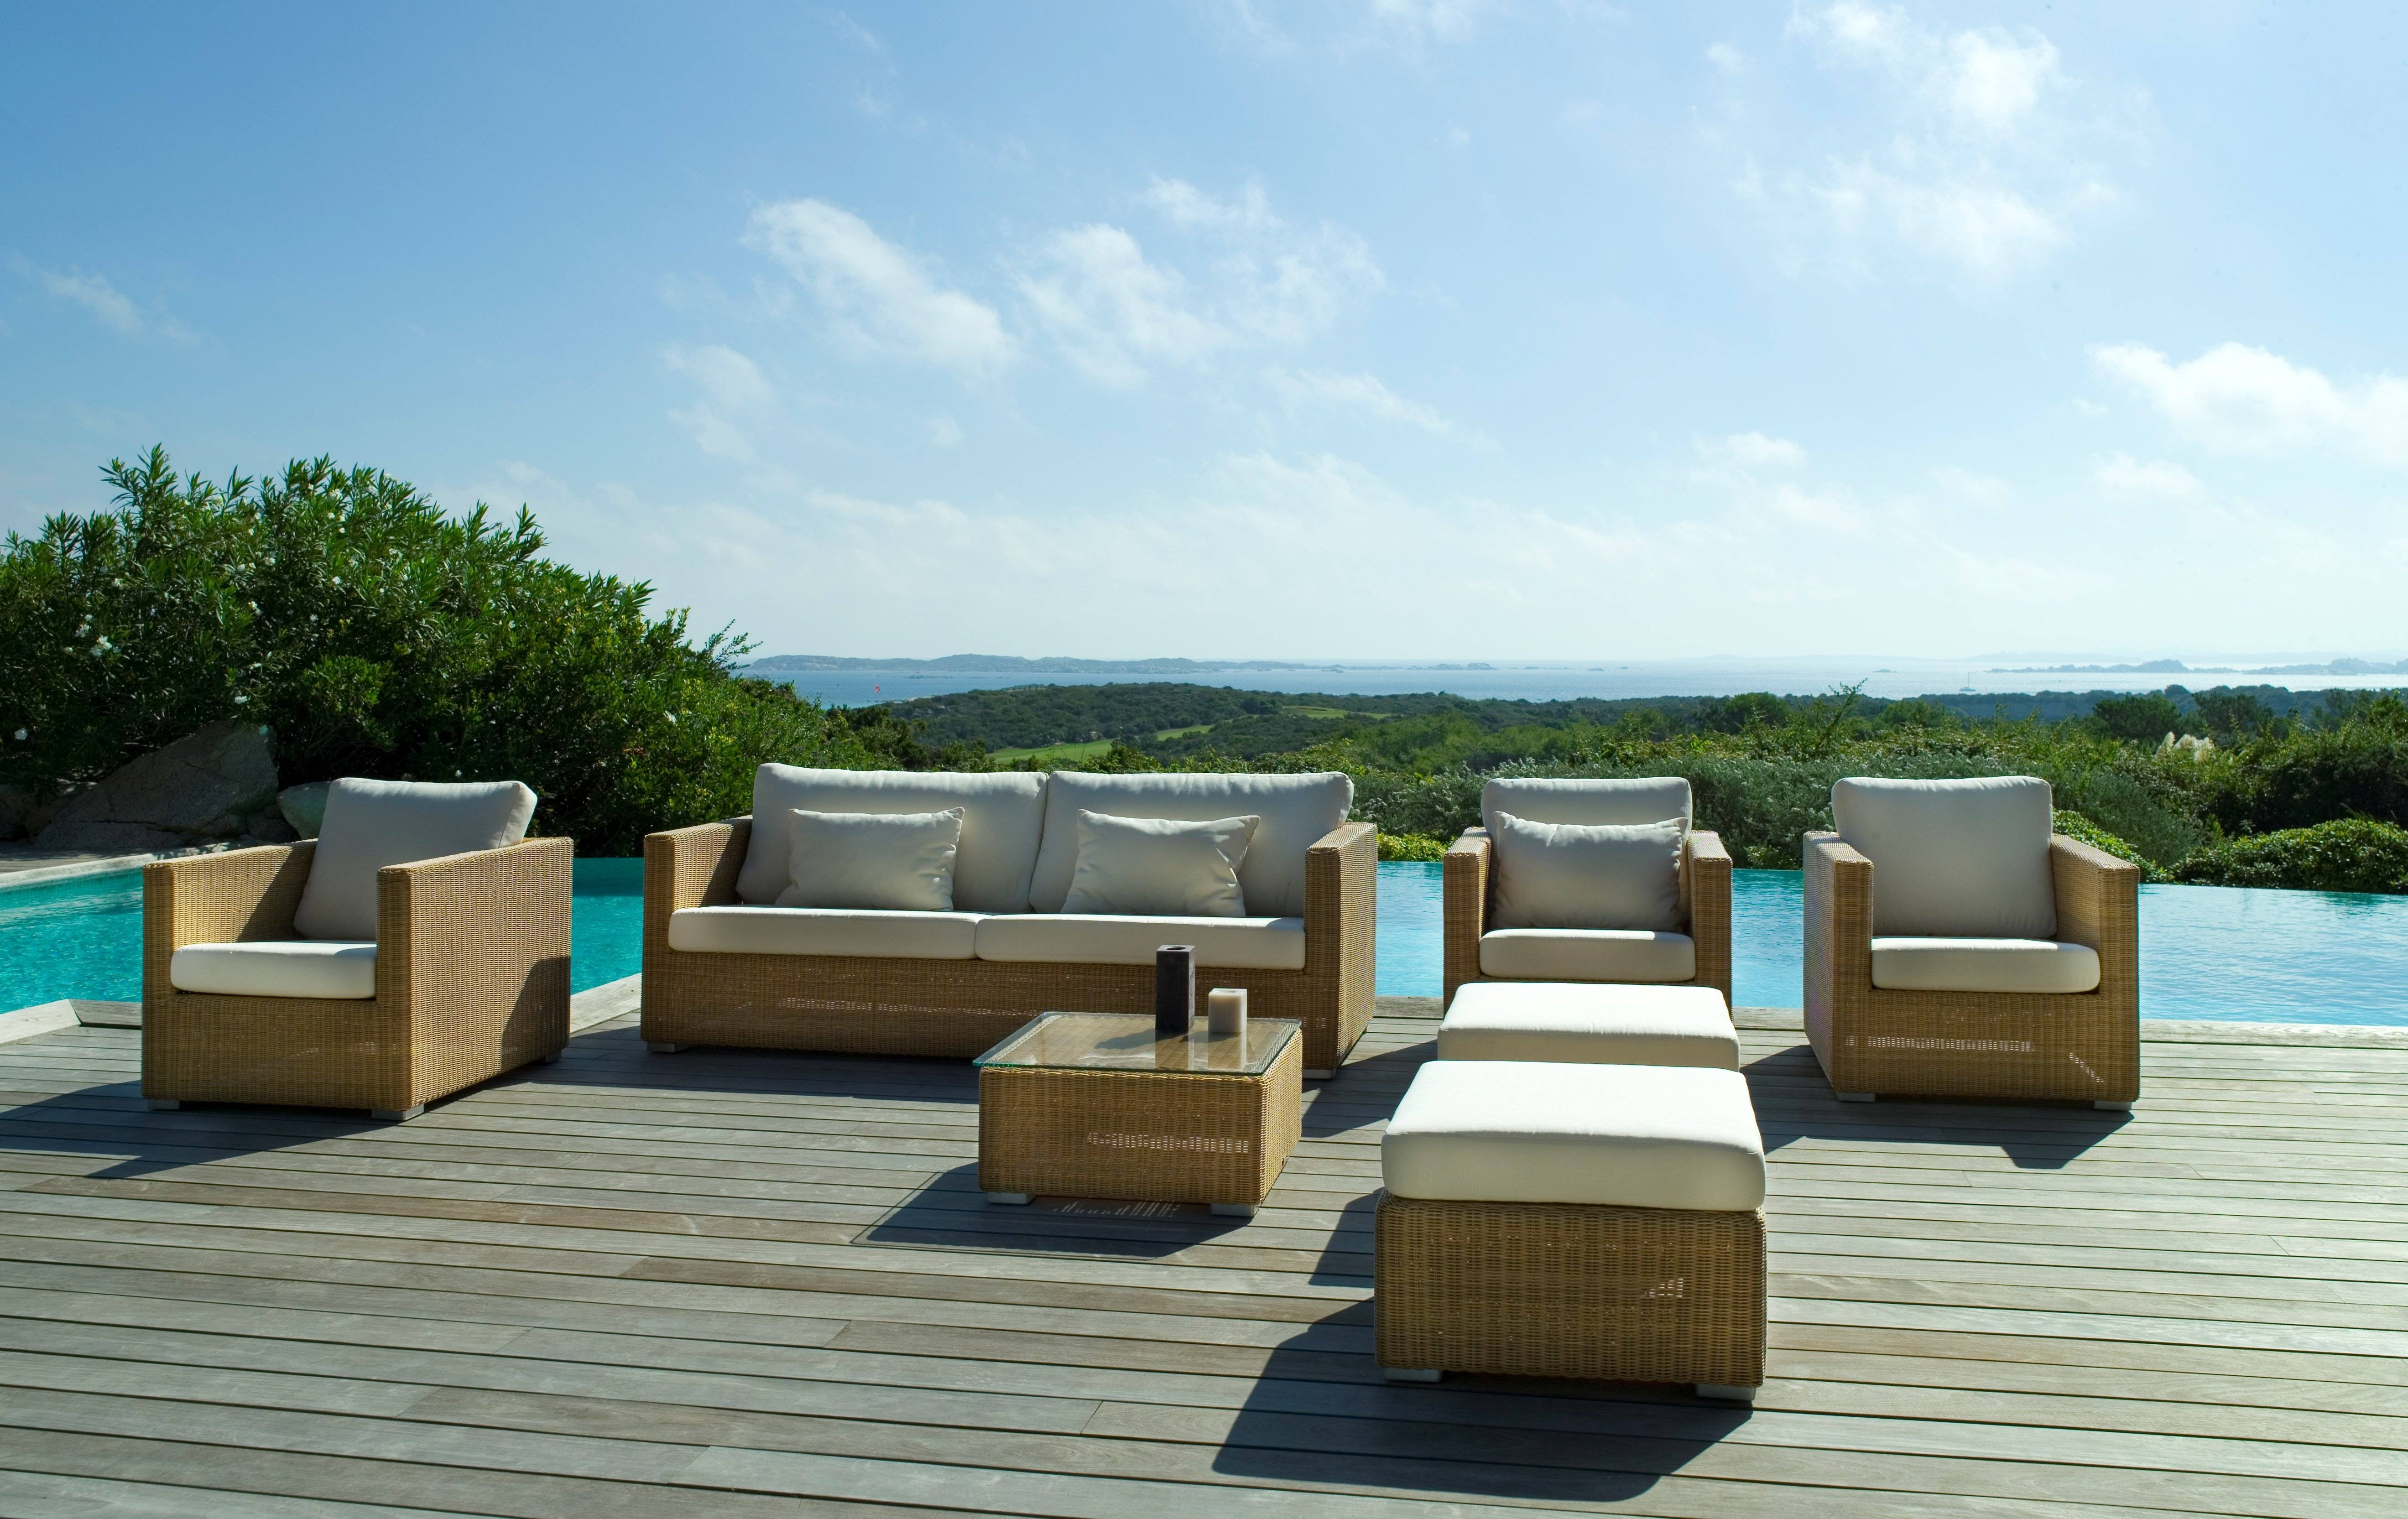 Contemporary Outdoor Furniture Sets, Furniture : Patio Chairs regarding Outdoor Sofas and Chairs (Image 2 of 15)